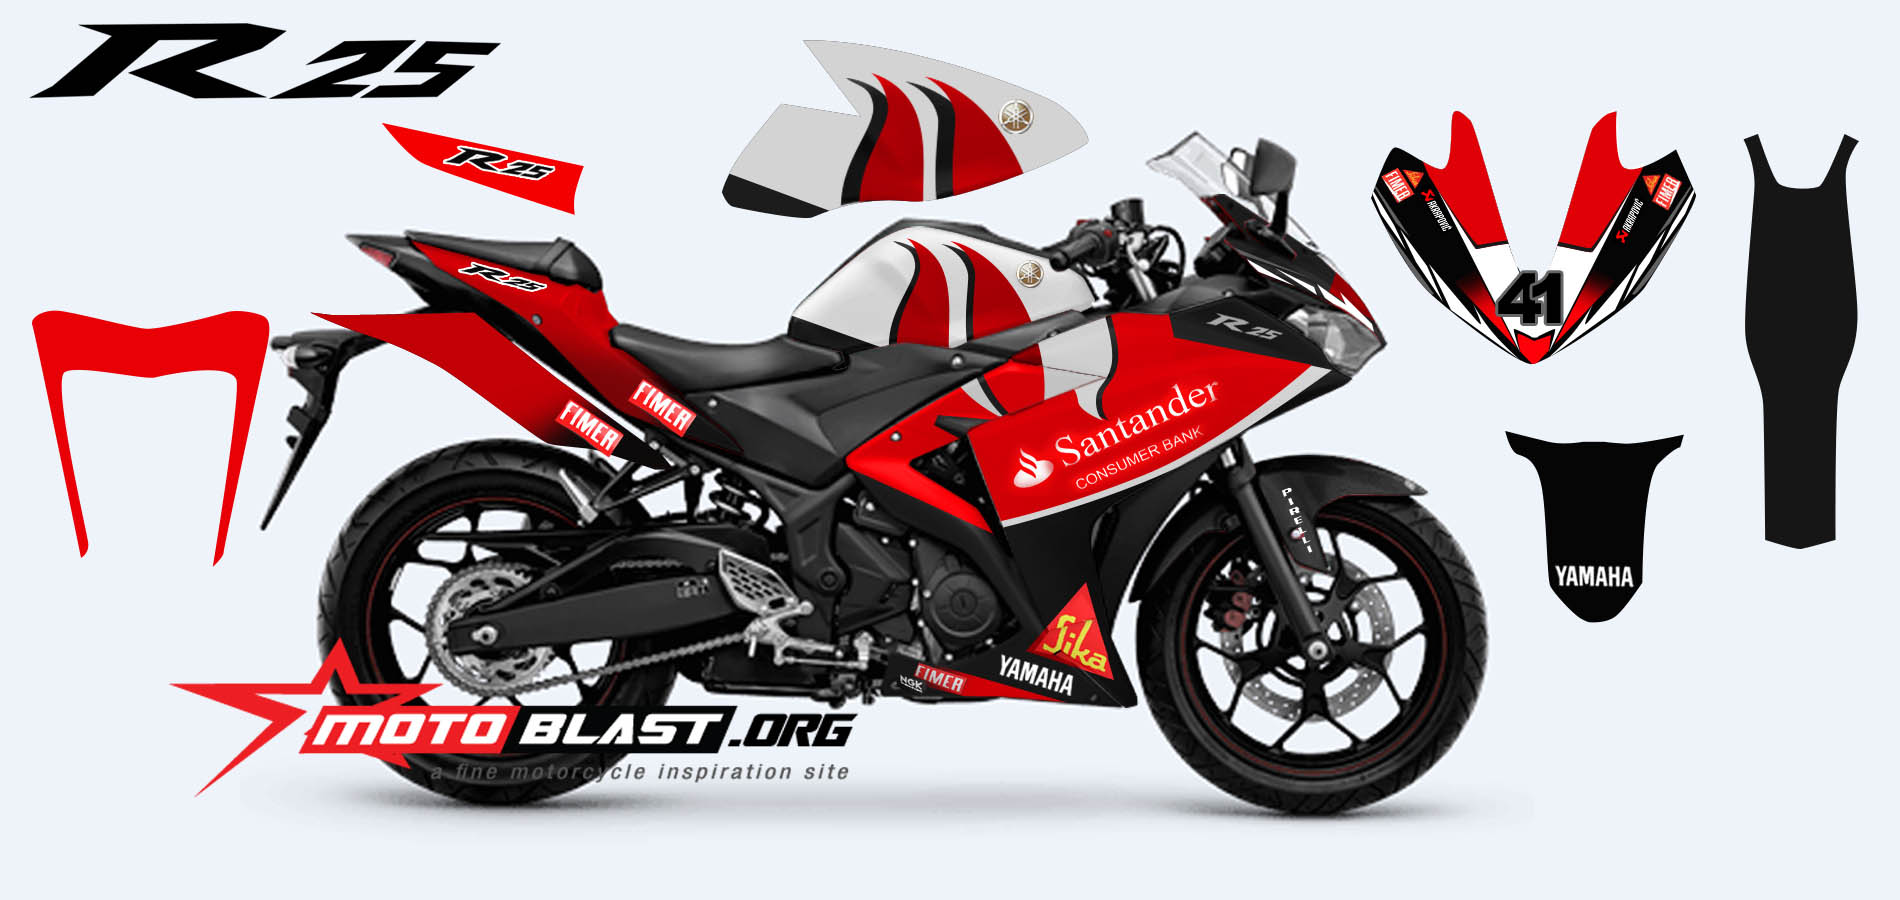 Modif Striping yamaha R25 Red - Santander Superbike